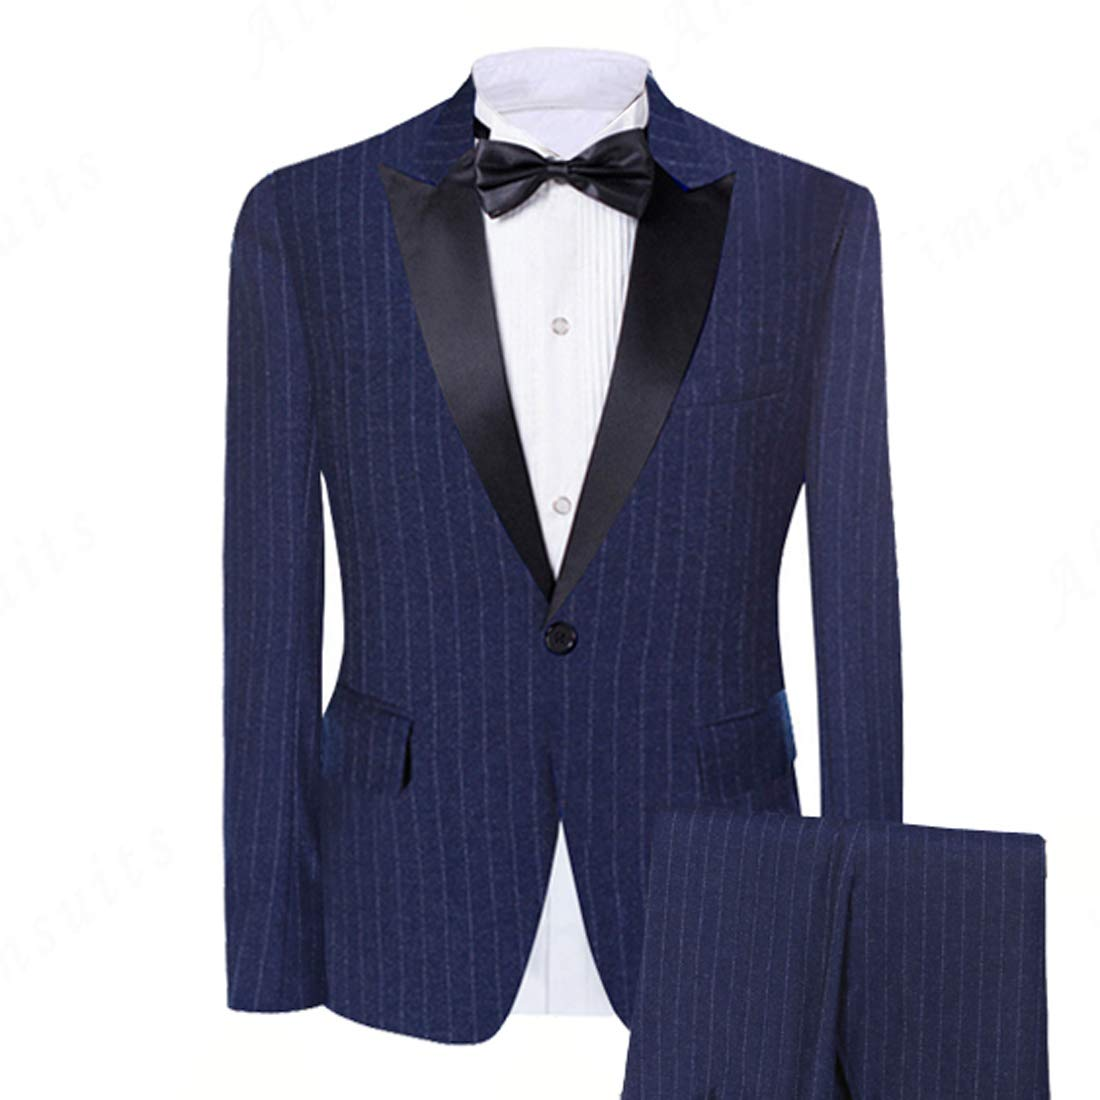 Abruzzomaster Pinstripe Groom Tuxedos Pesked Lapel Groomsman Suit Blue Striped Man Suit Woolblend Formal Suits